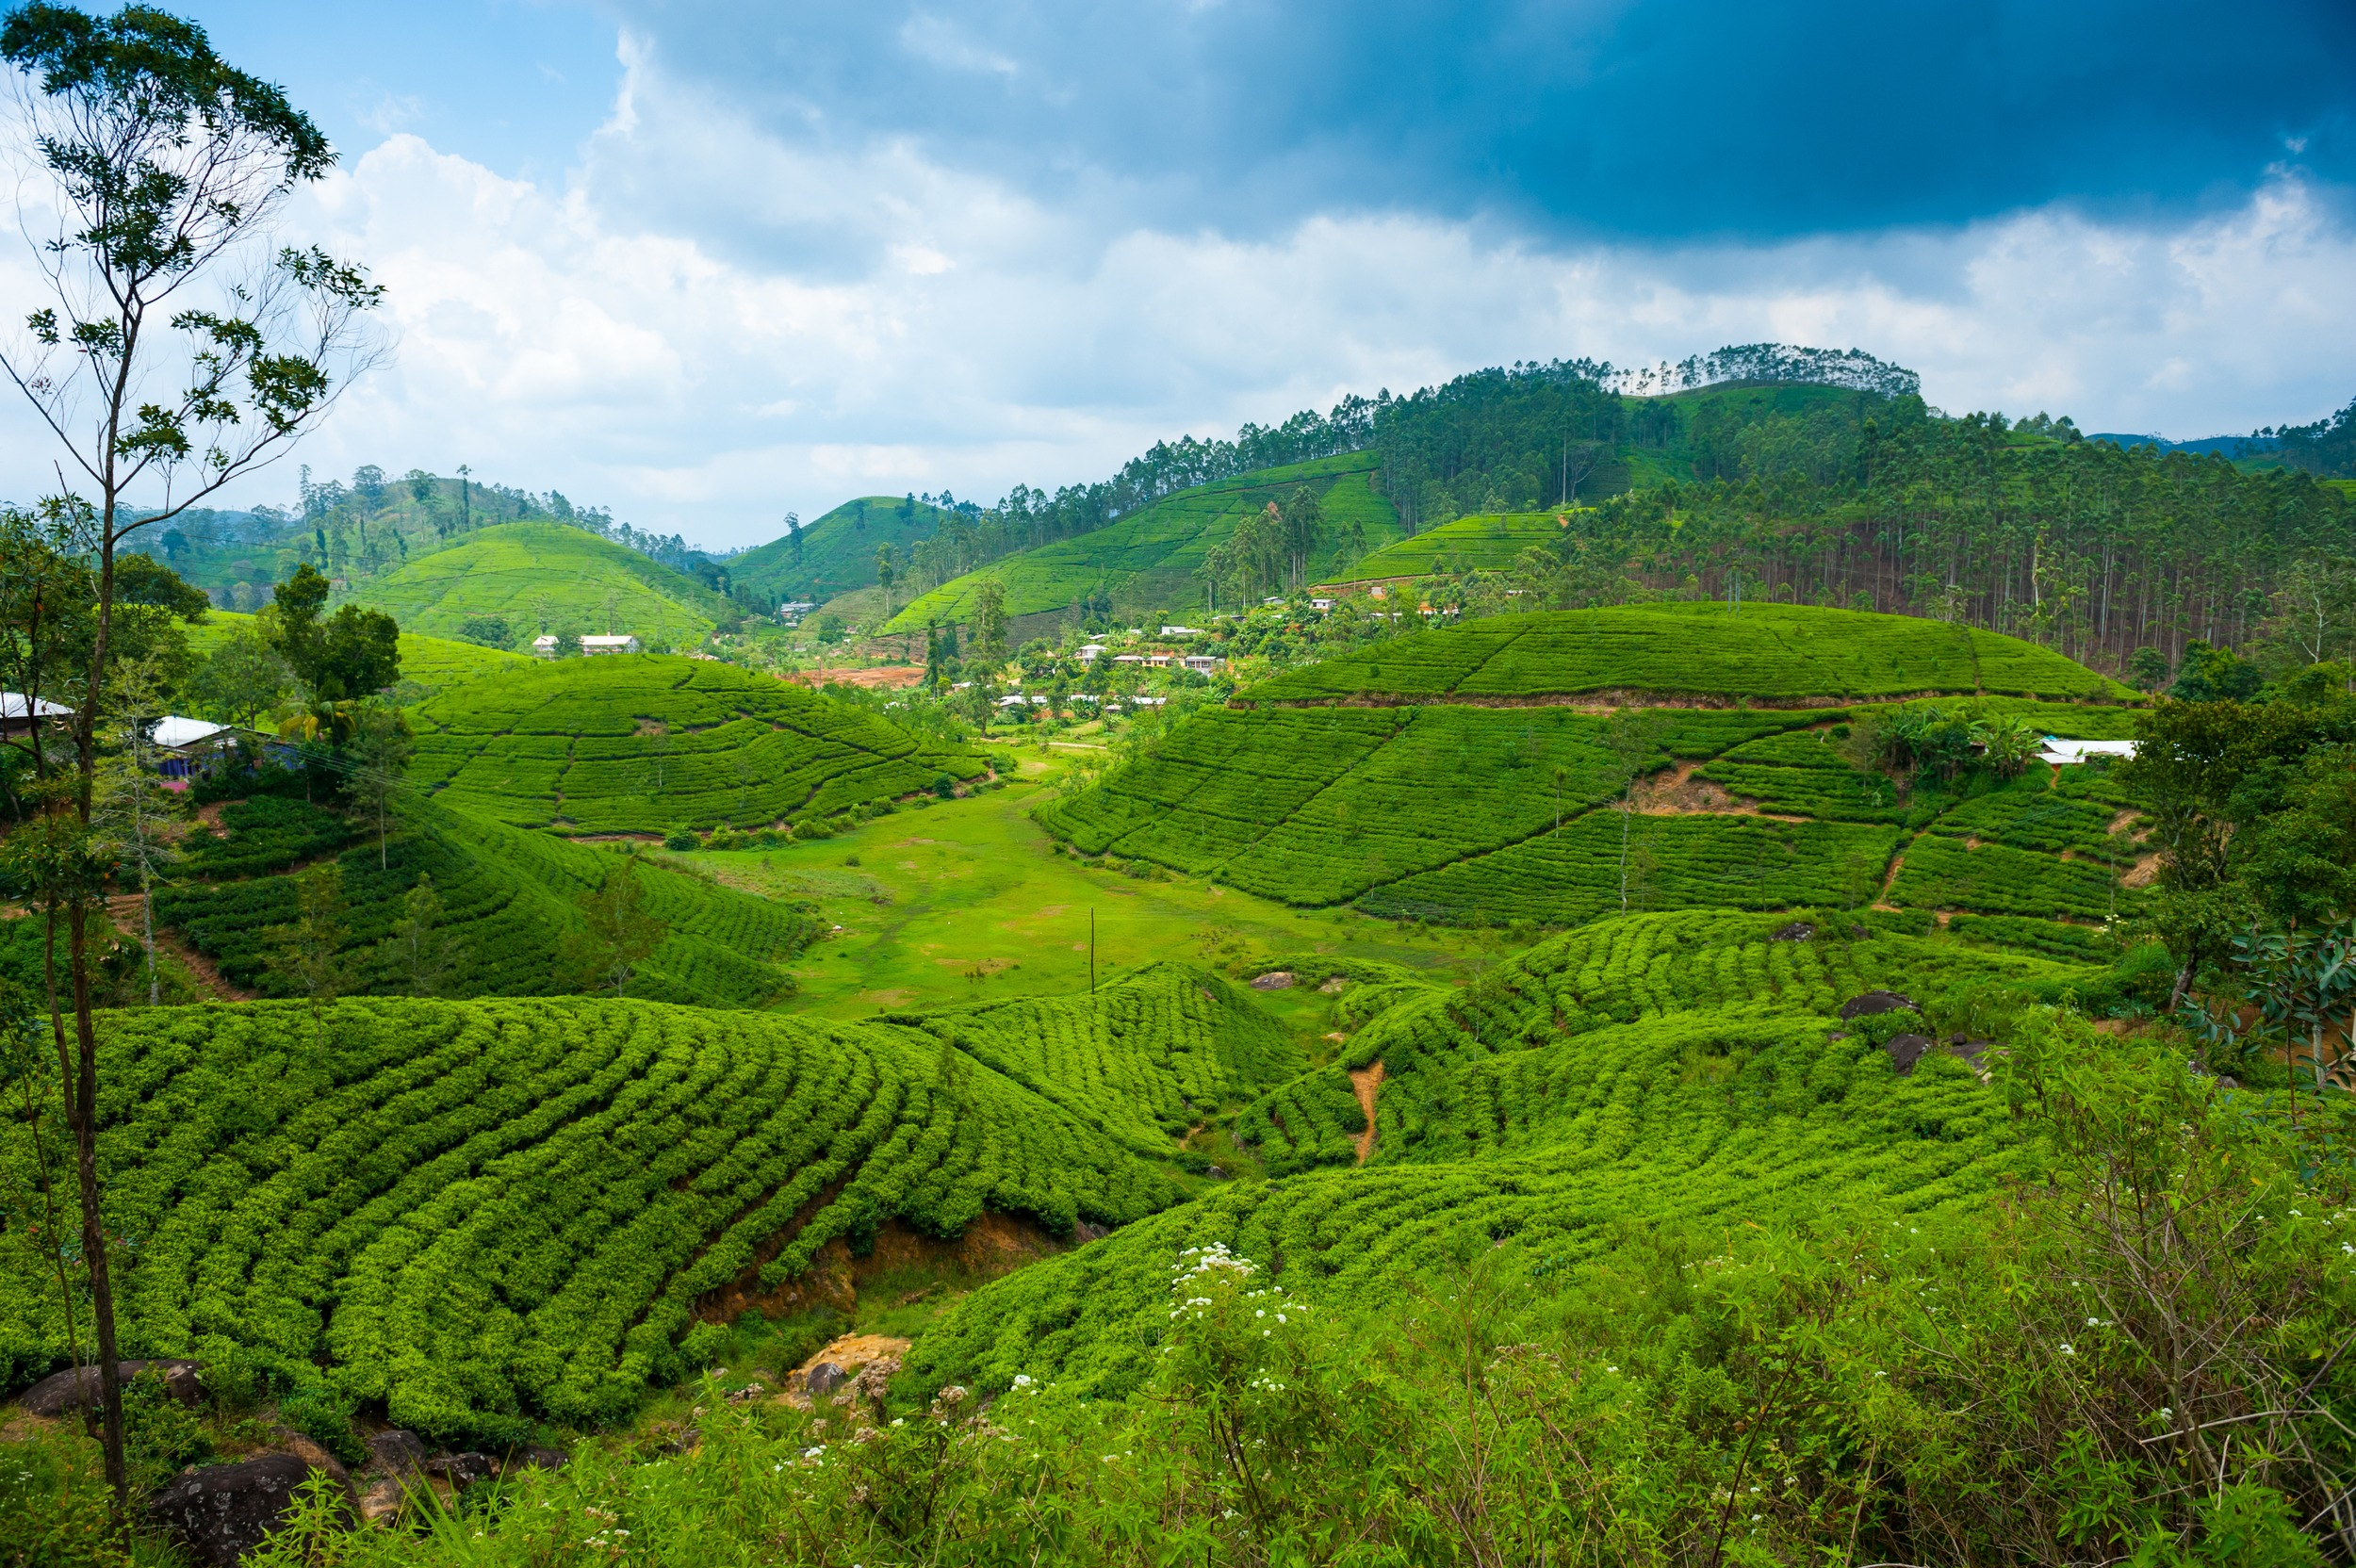 invite-to-paradise-sri-lanka-holiday-honeymoon-tea-plantations-mountains-16b.jpg